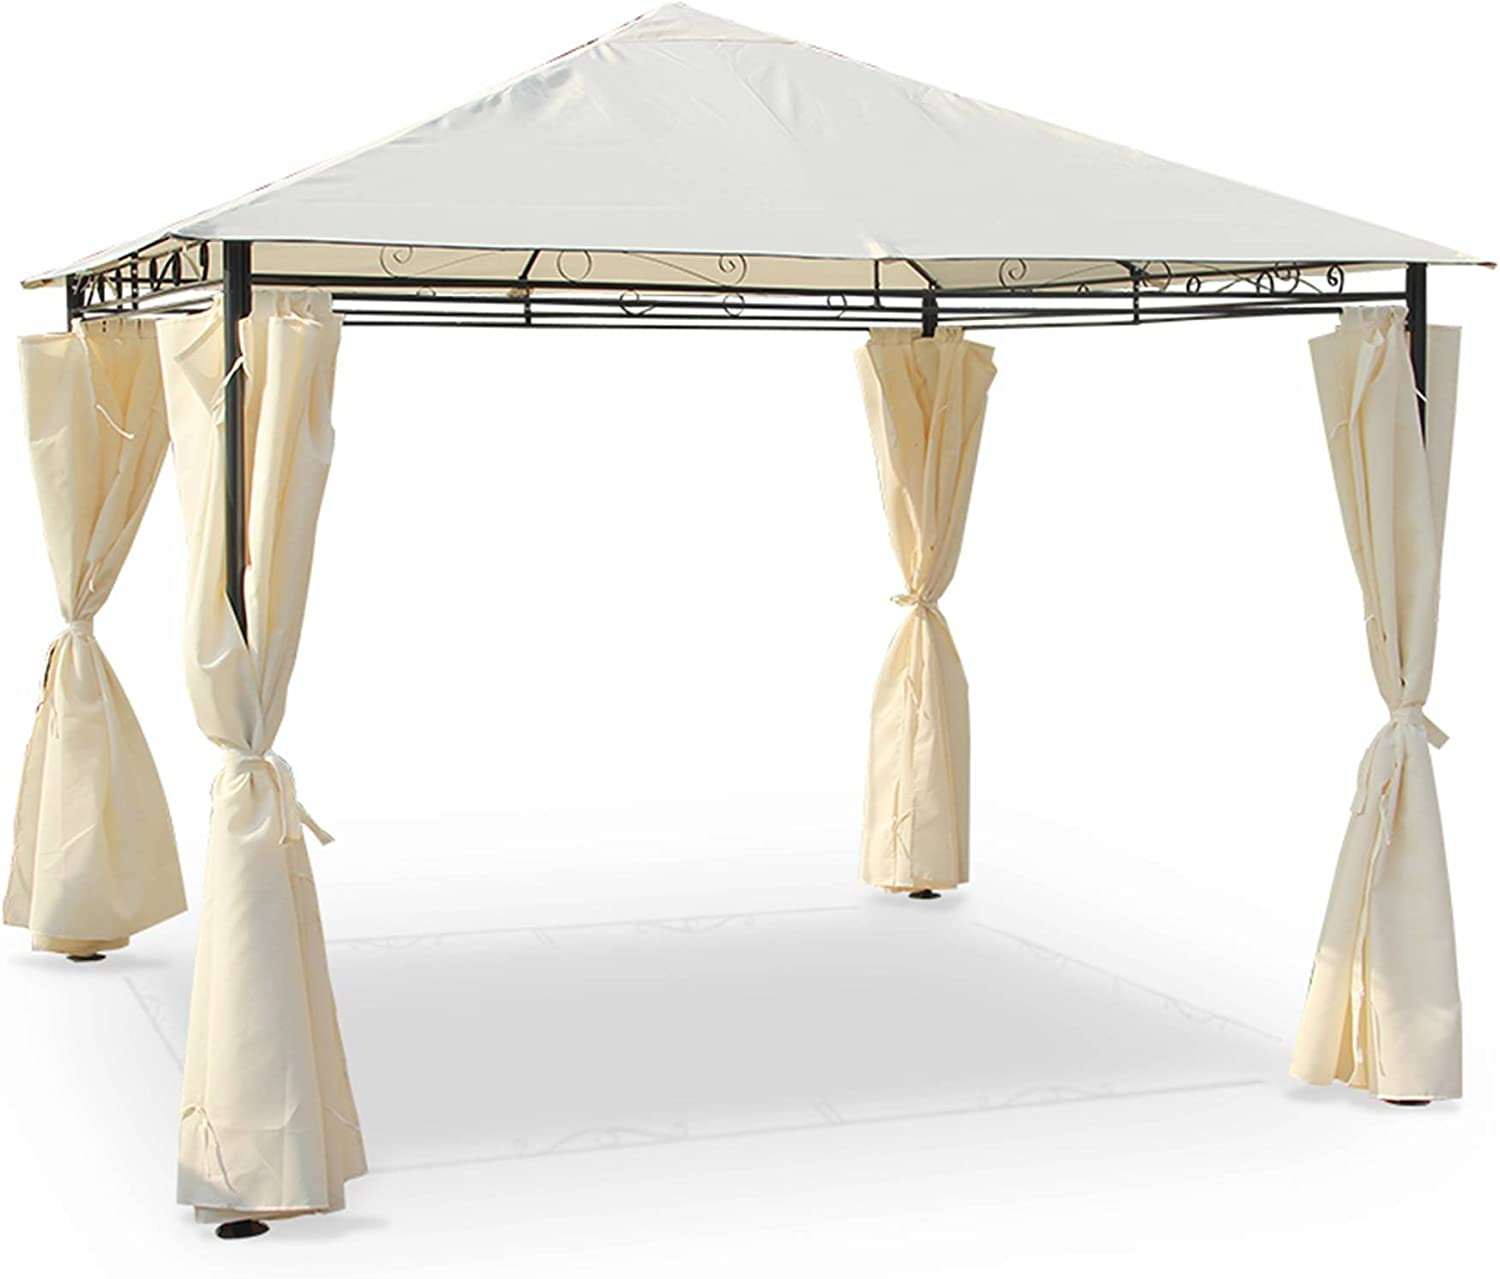 Alices Garden - Pergola con toldo 3x3m - Crudo - TOLOSA: Amazon ...